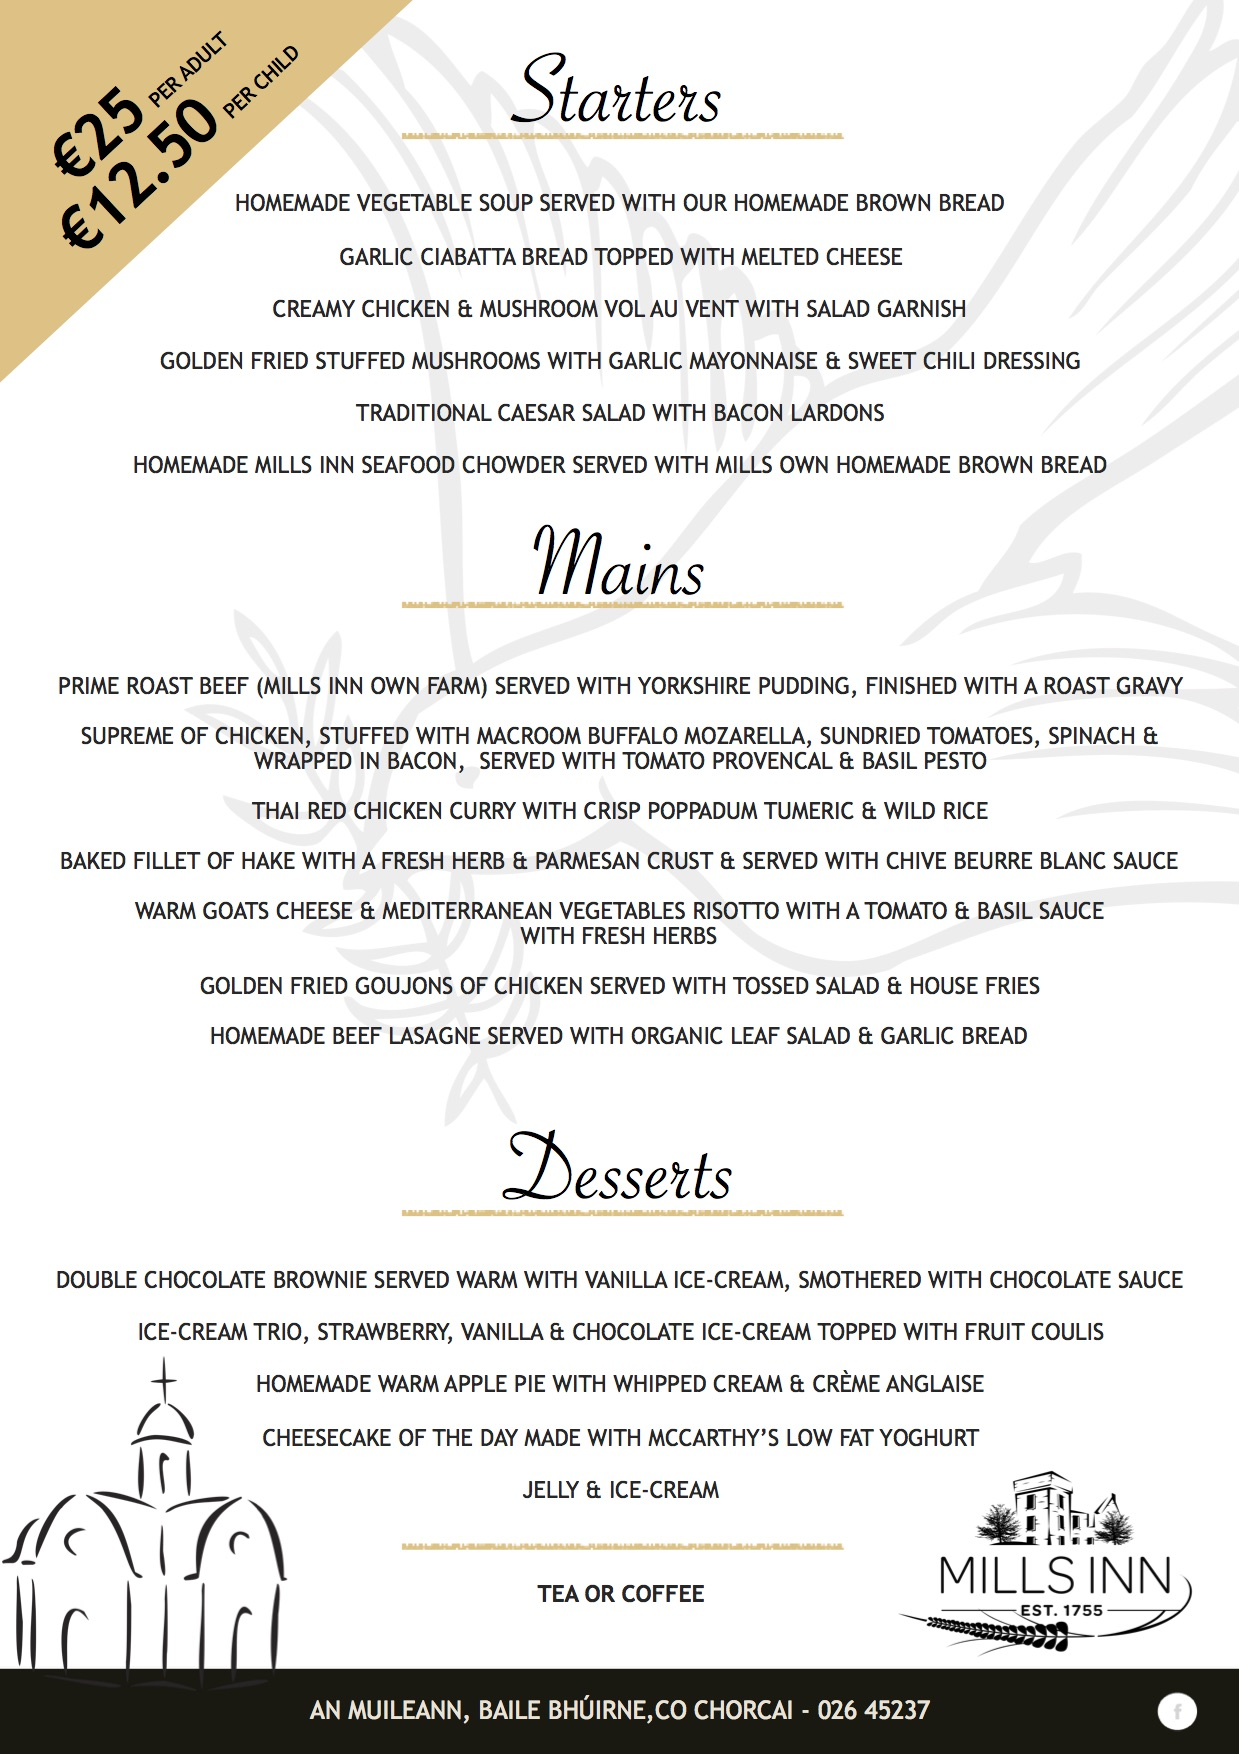 Communion Menu 2018 Mills Inn